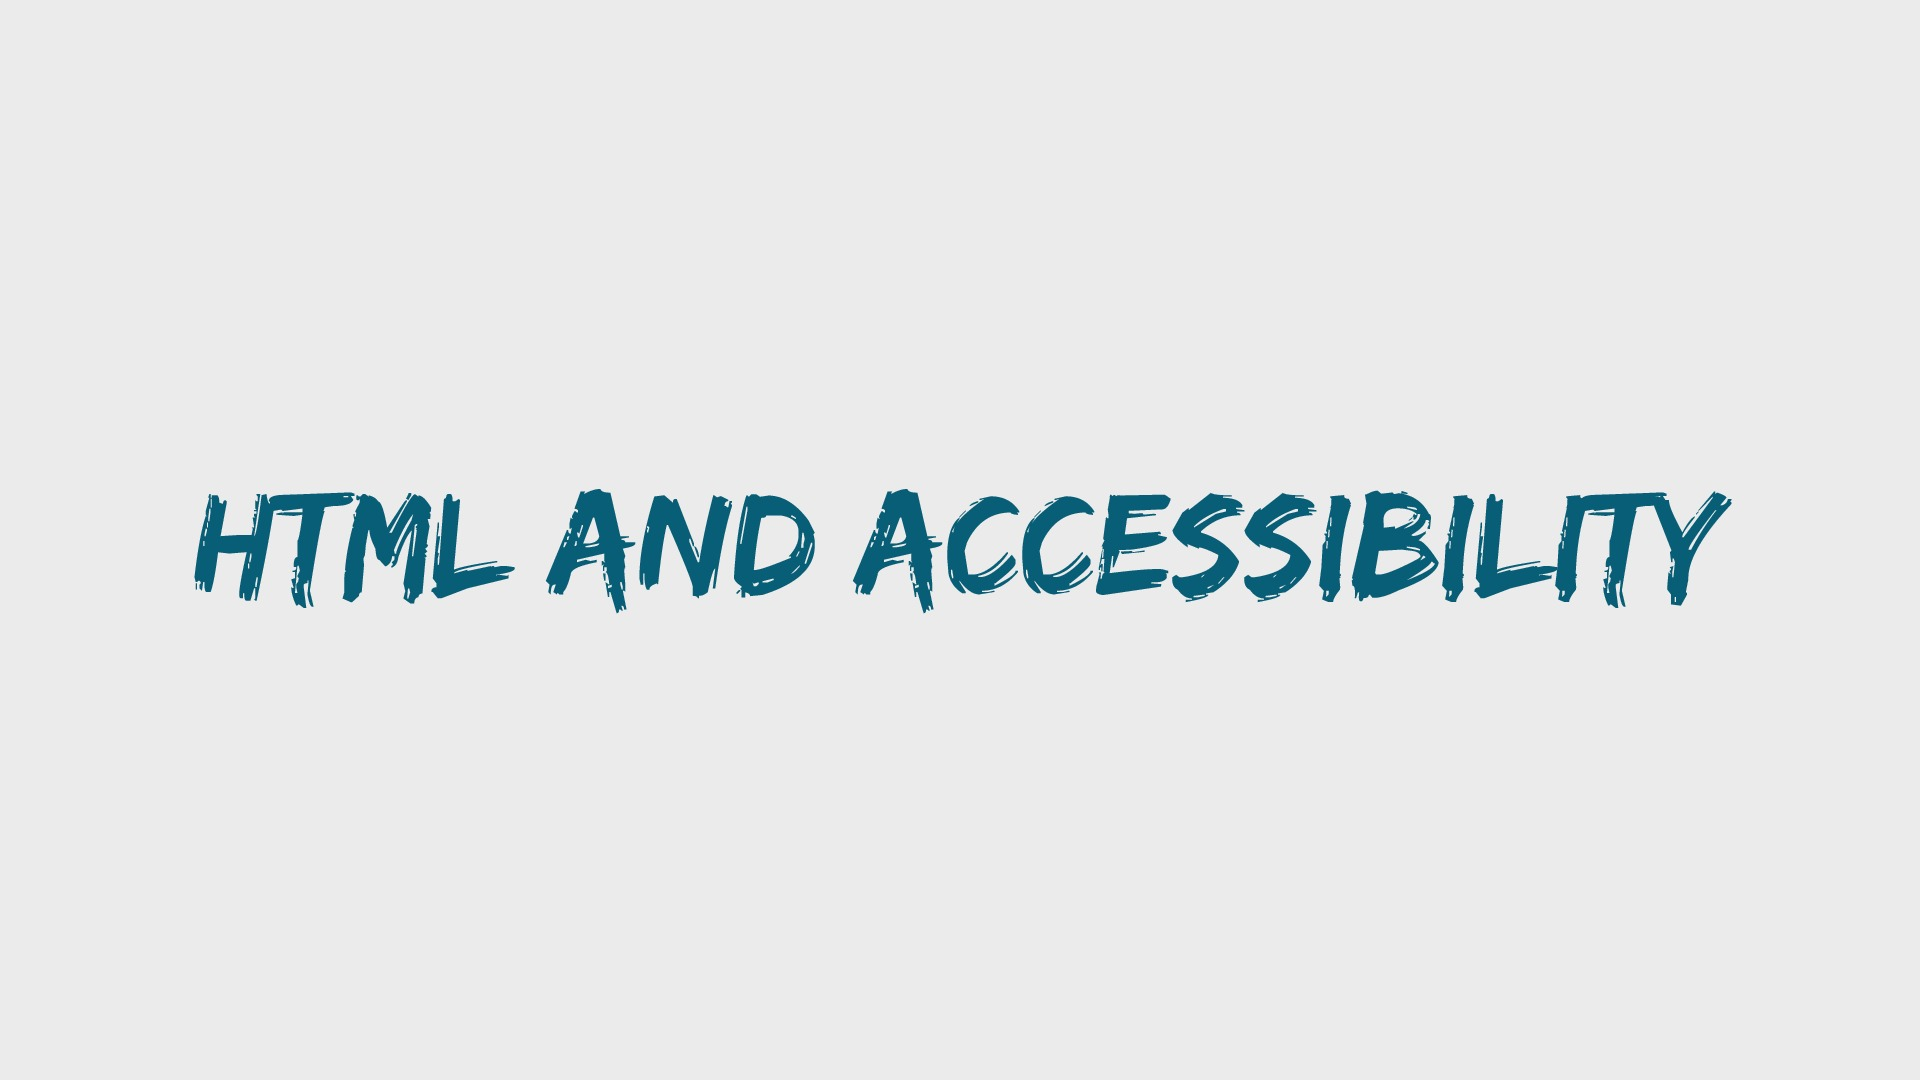 HTML and accessibility